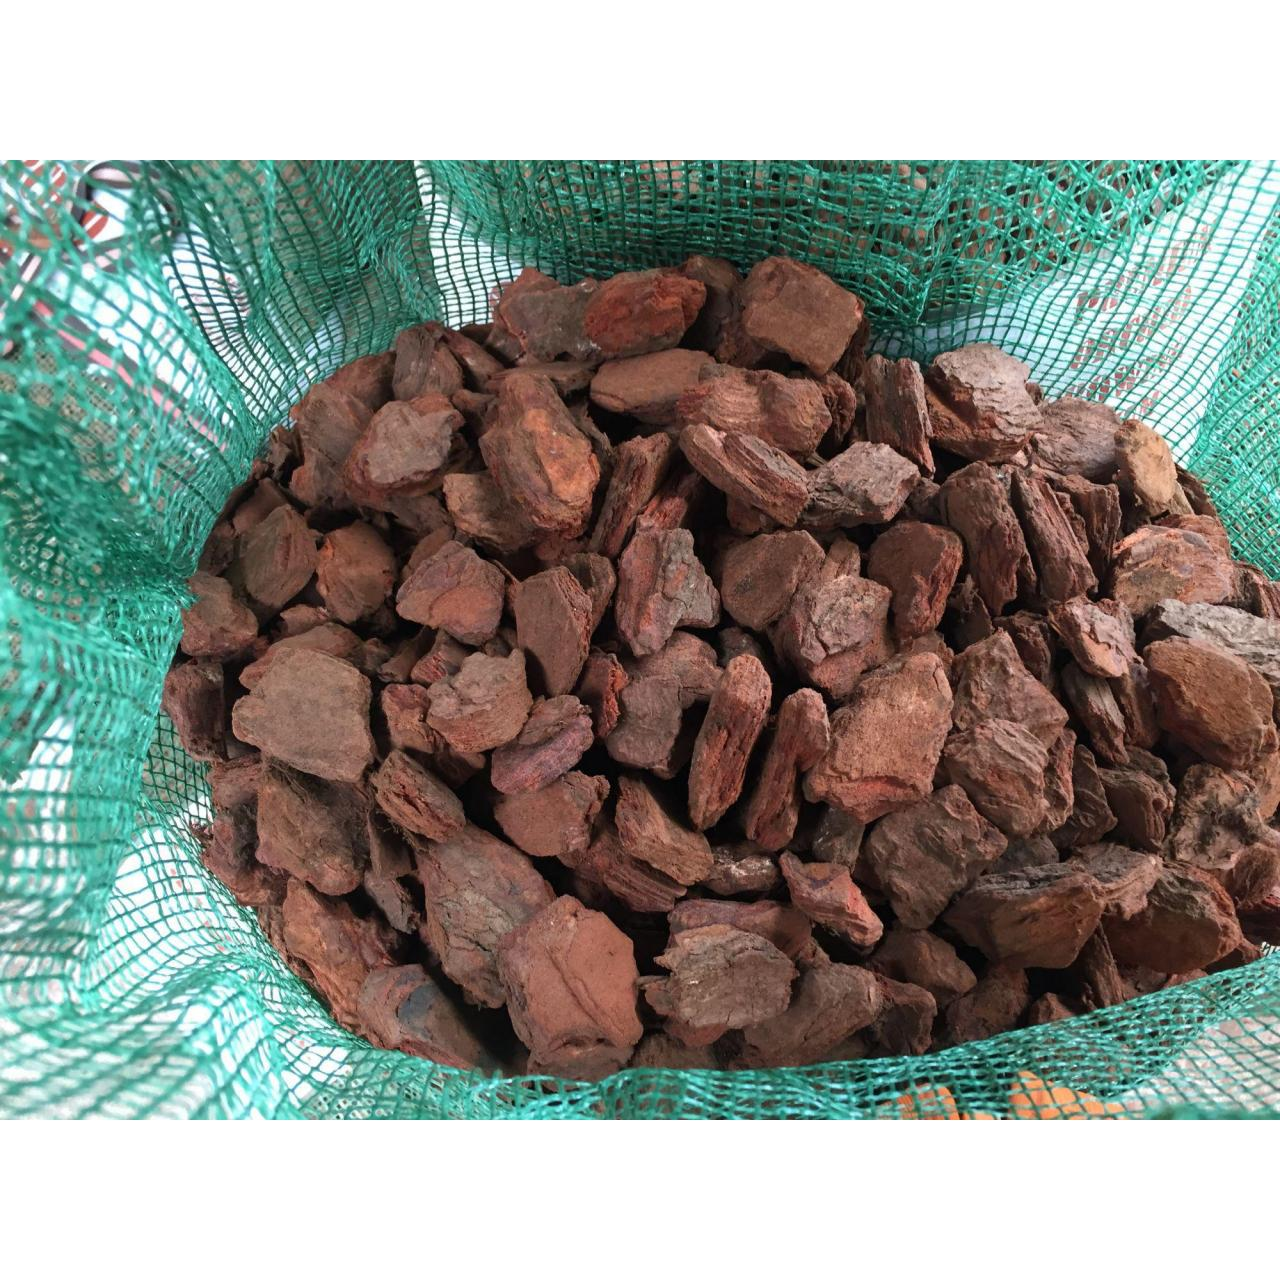 Quality 3FB Kiwi Orchid Bark for sale